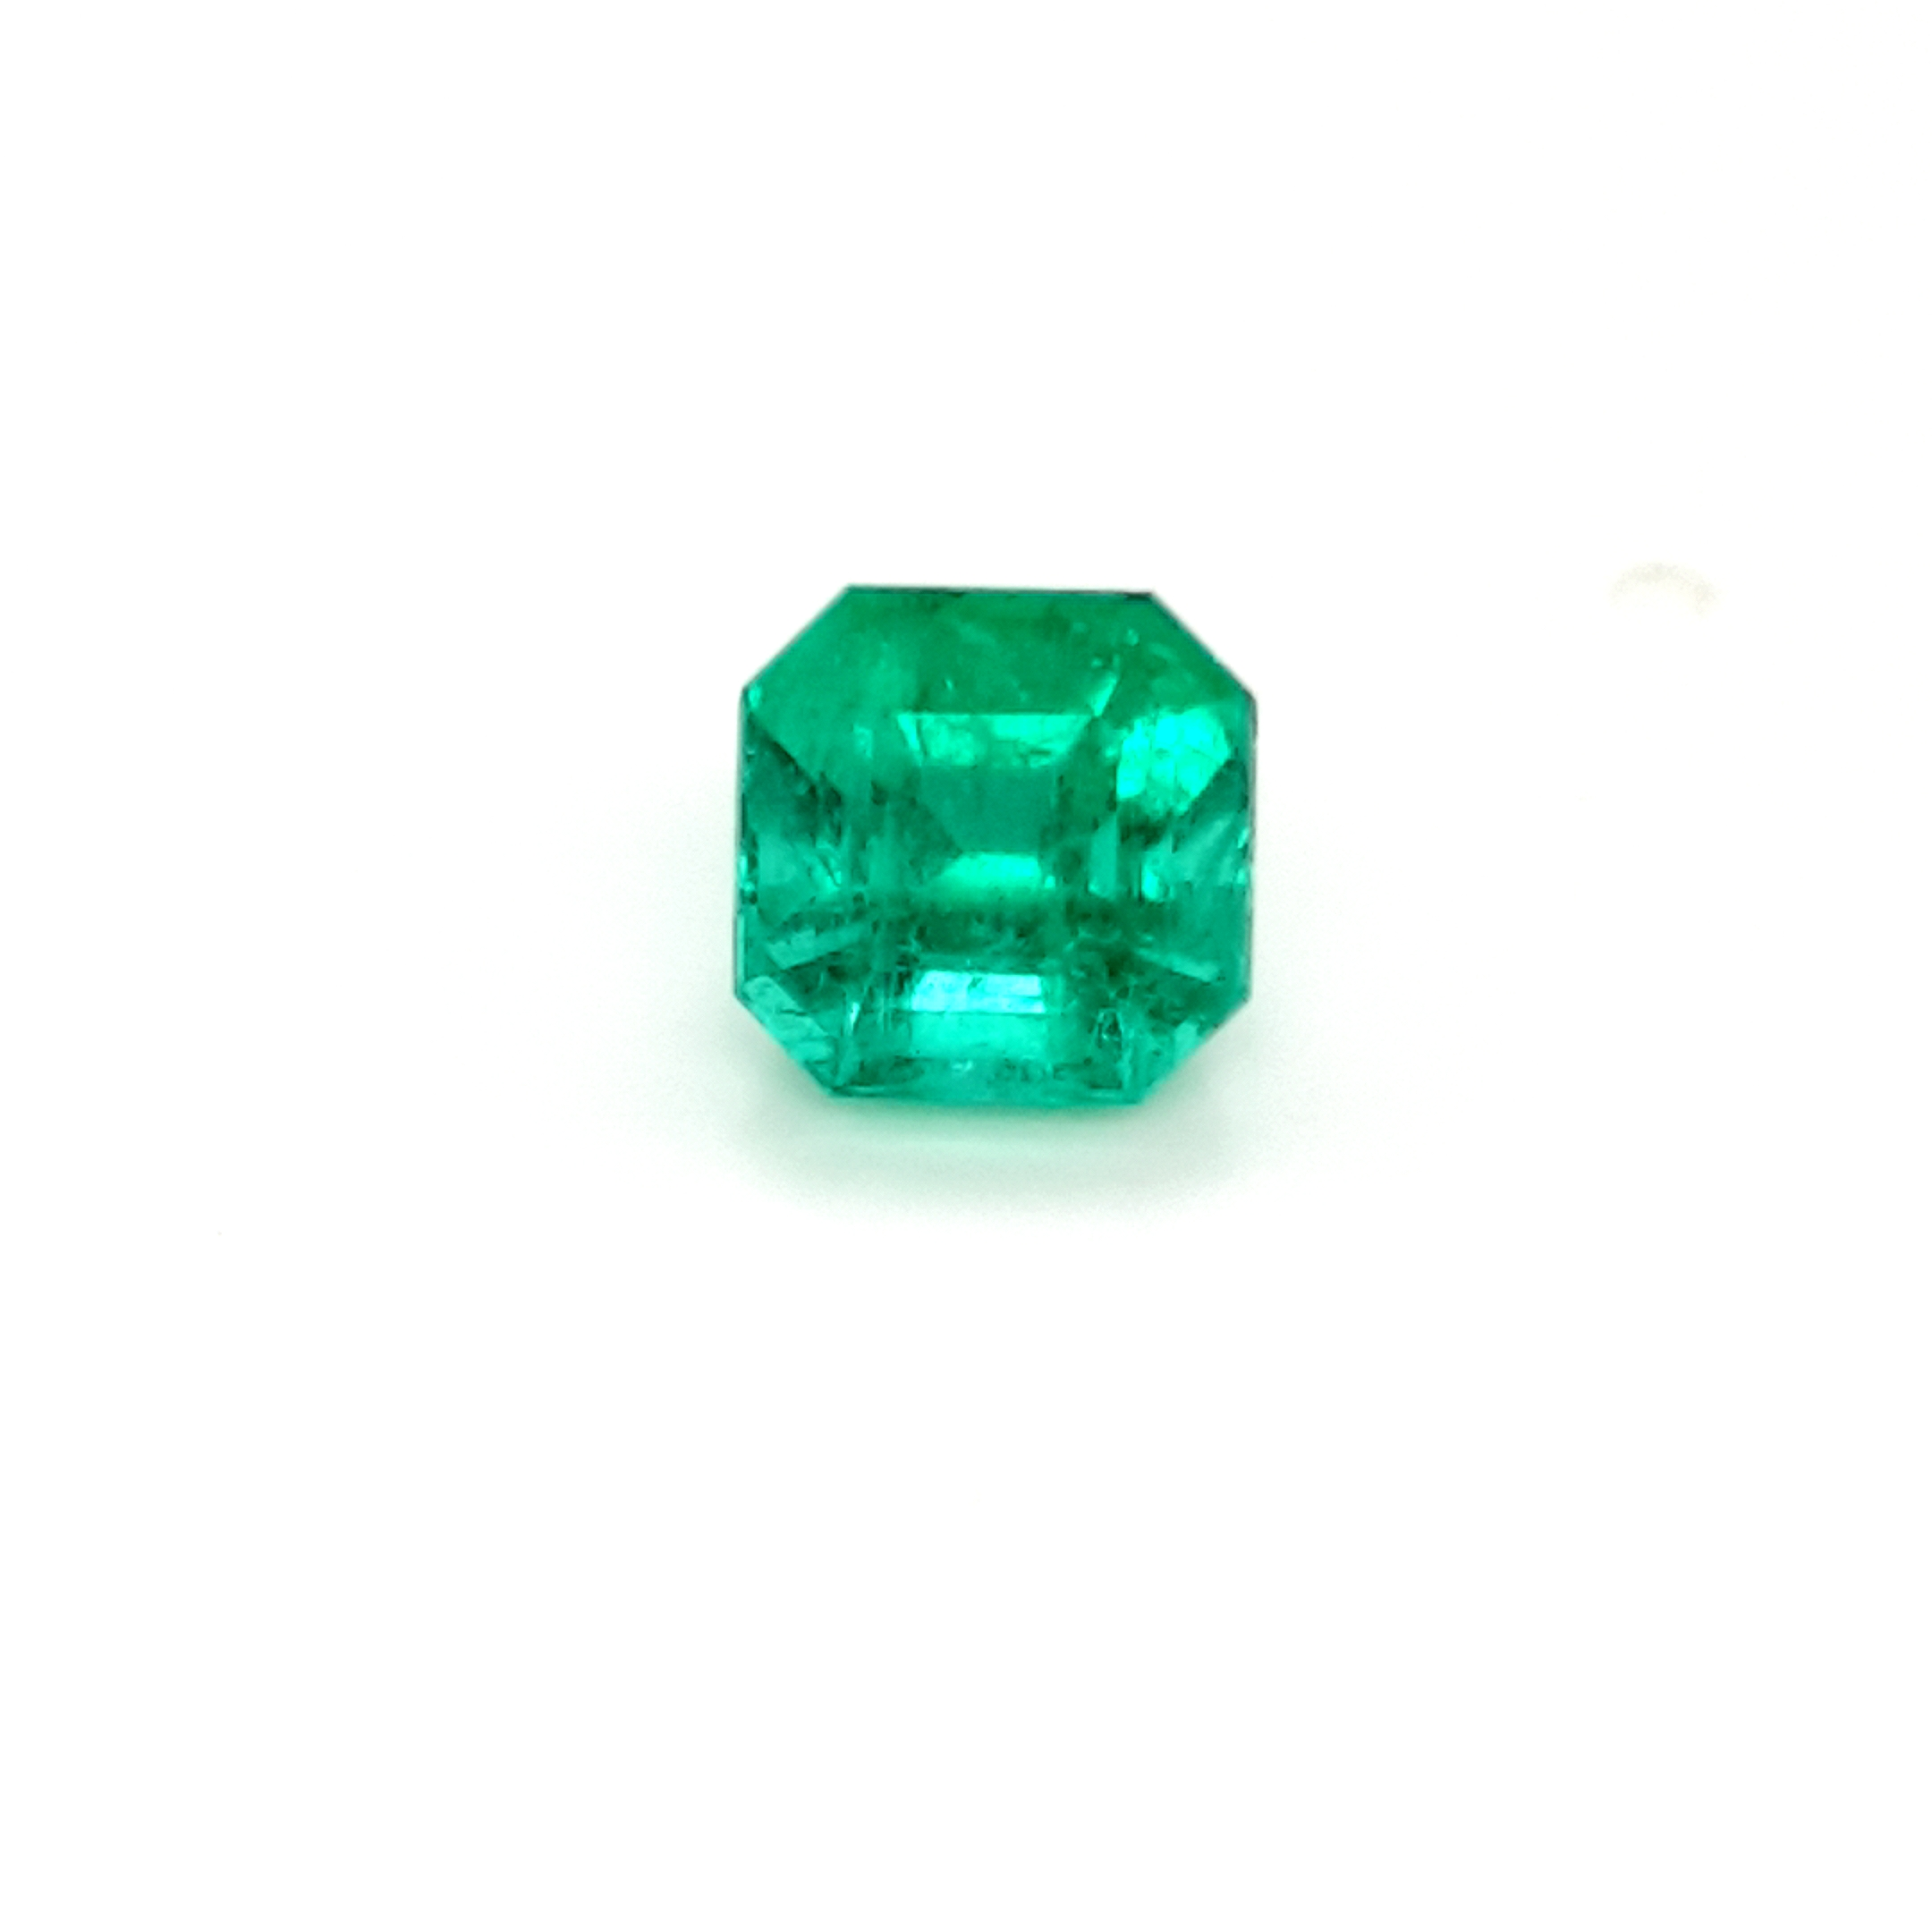 3,04ct. Emerald from Colombia EML13D27 ClaudiaHamann__2021-03-26-00-32-12